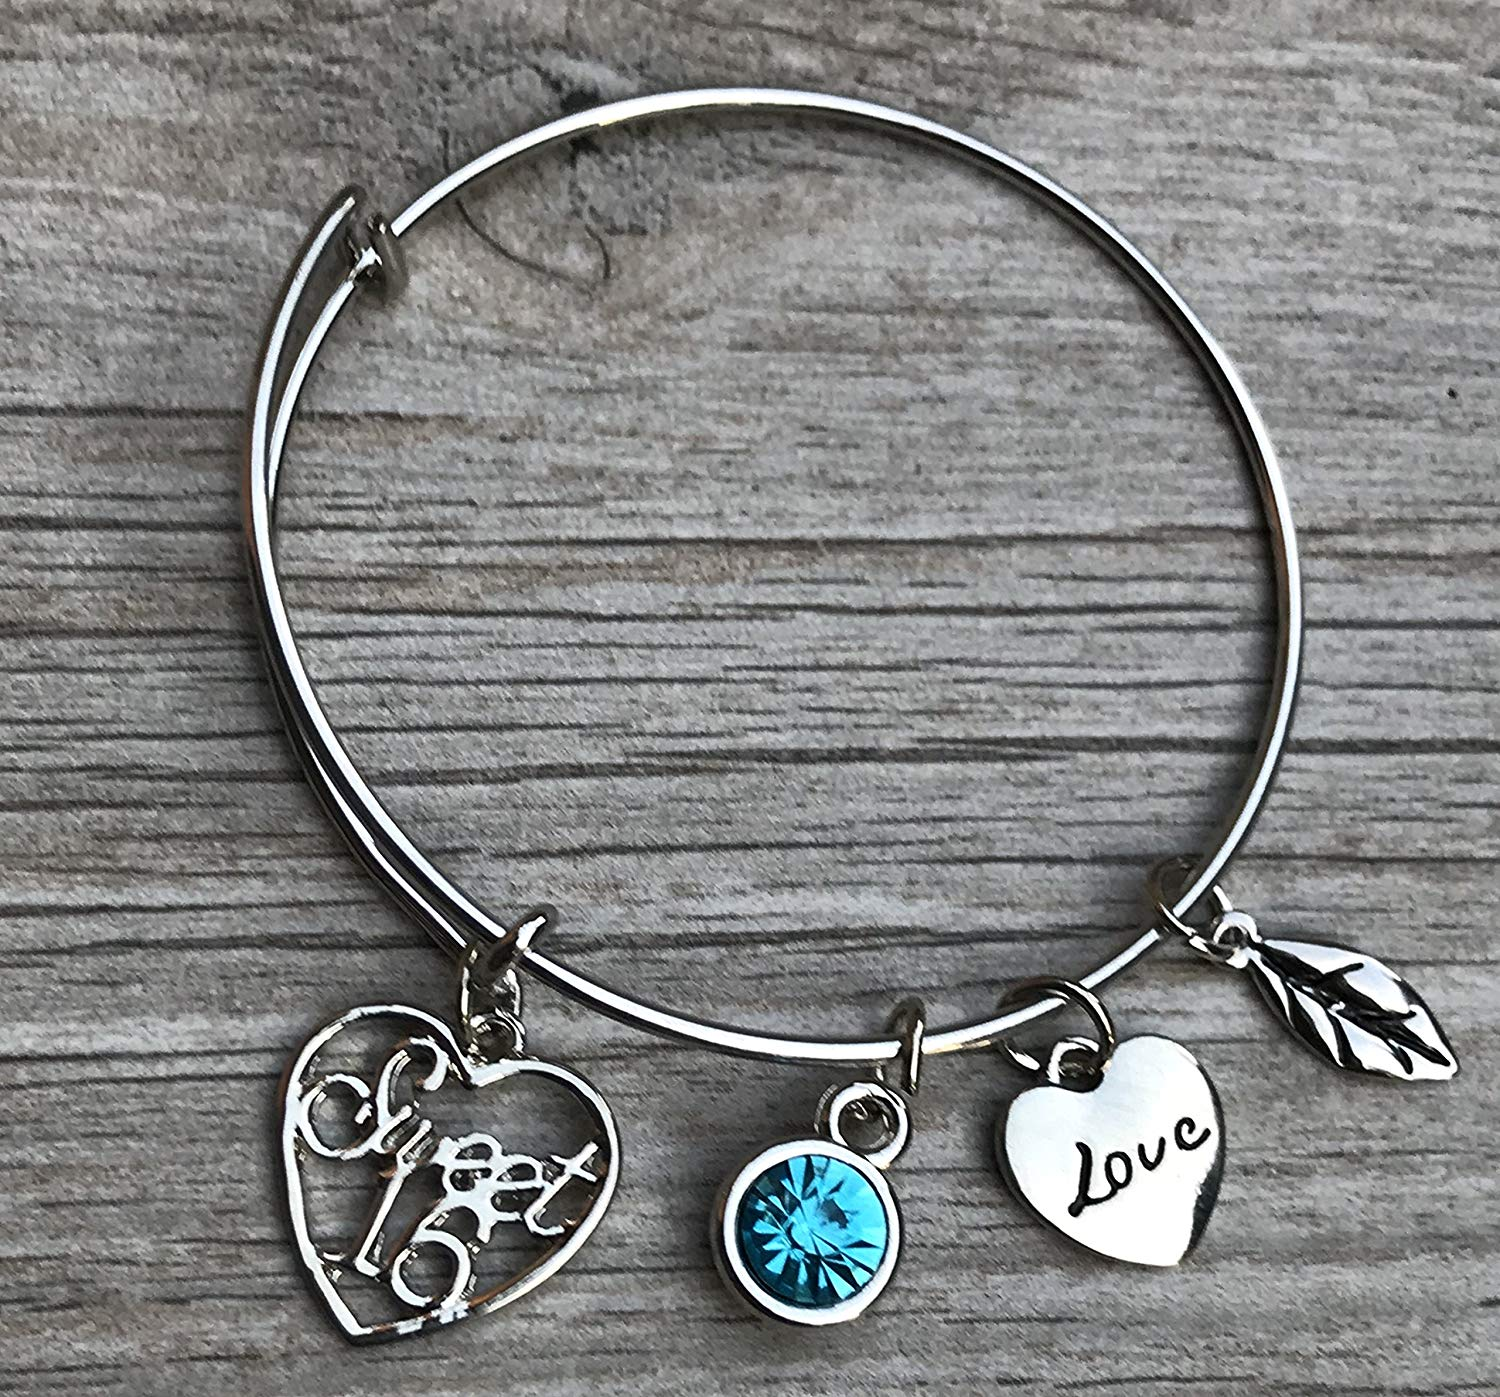 b611bd8ba7e Personalized Sweet 16 Charm Bangle Bracelet with Birthstone